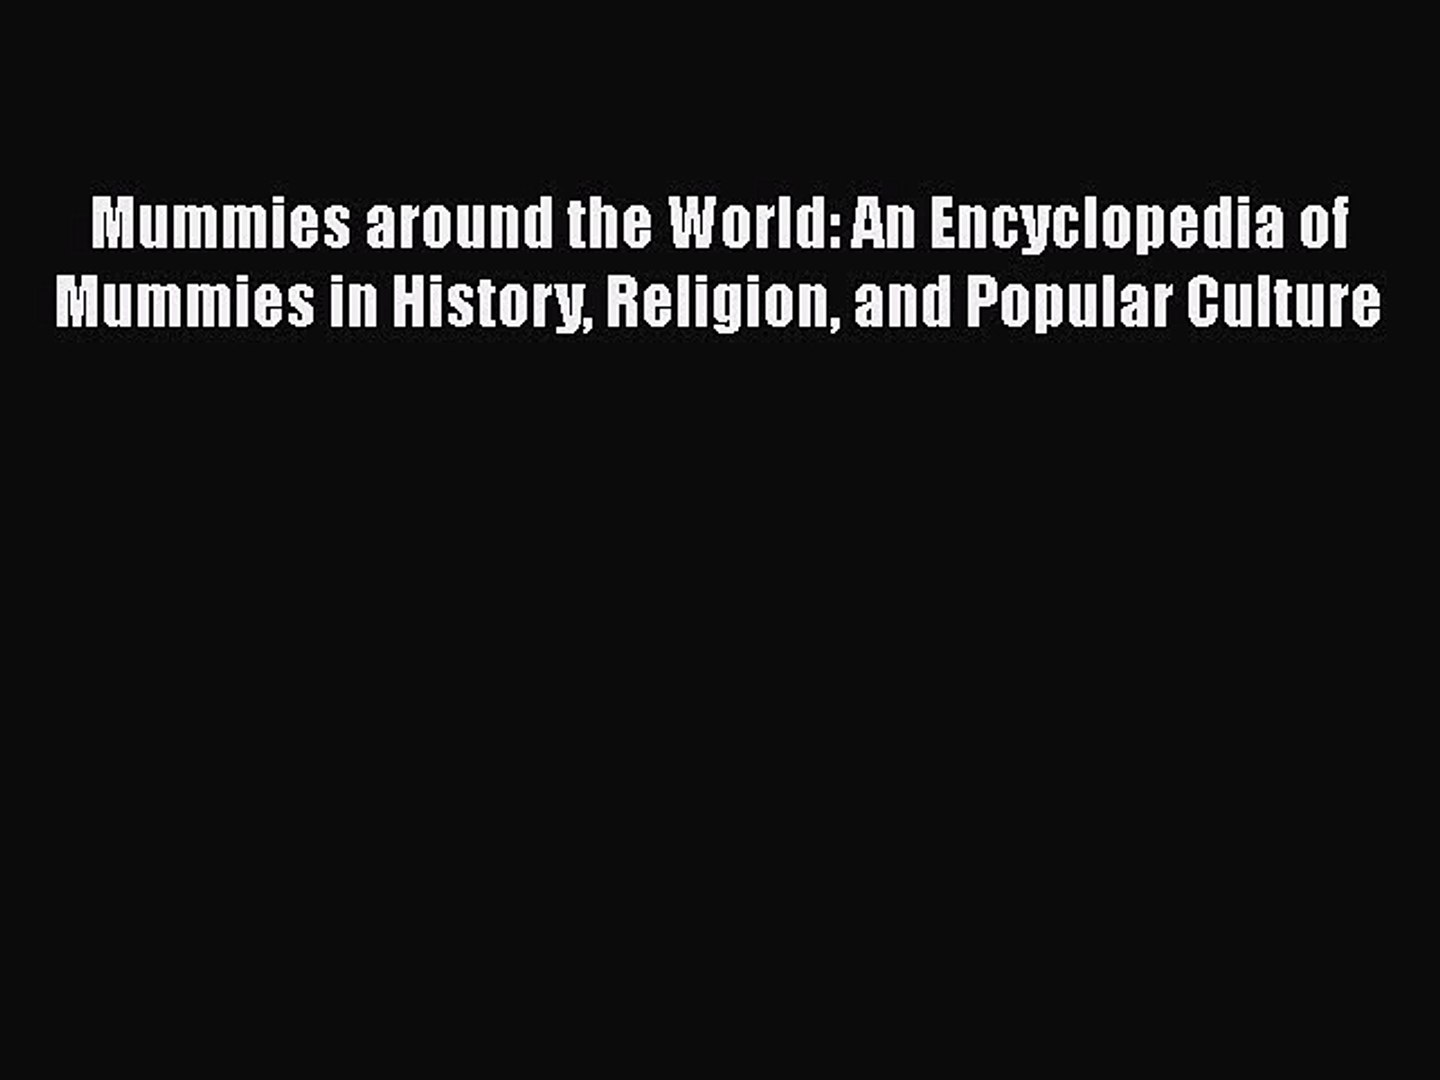 Read Mummies around the World: An Encyclopedia of Mummies in History Religion and Popular Culture